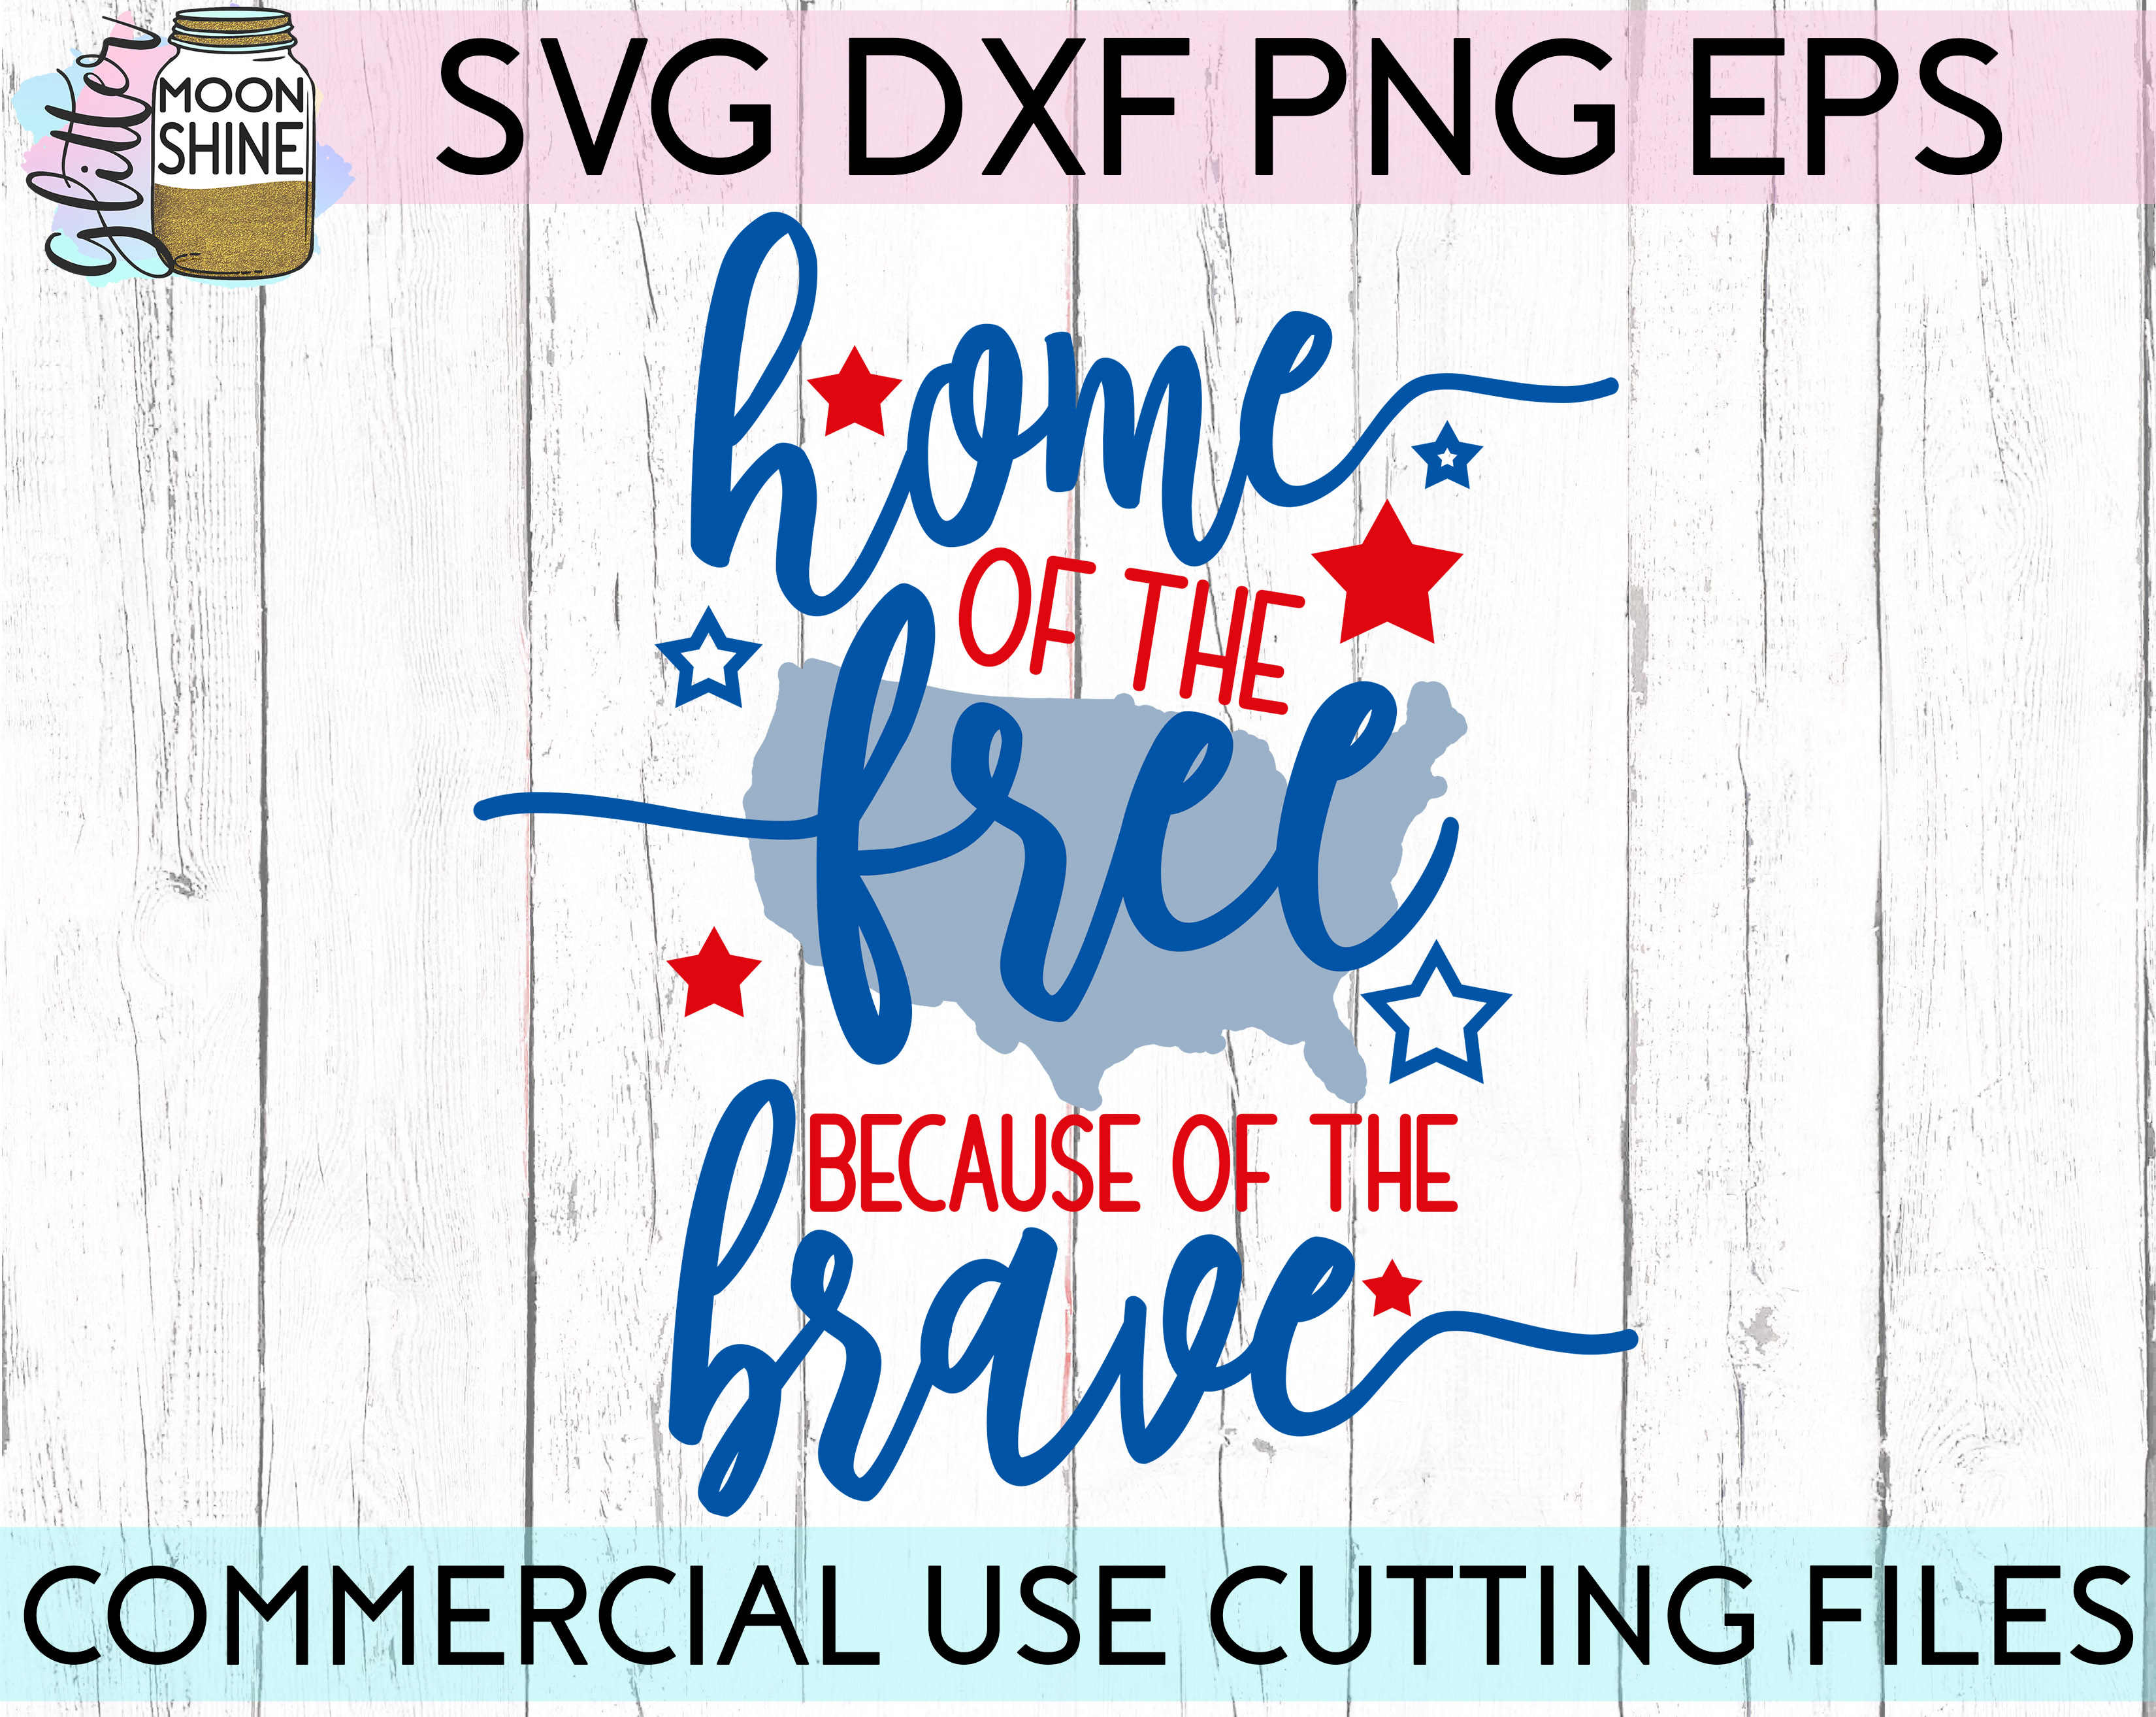 Huge 4th Of July Design Bundle of 23 SVG DXF PNG EPS Cutting Files example image 5